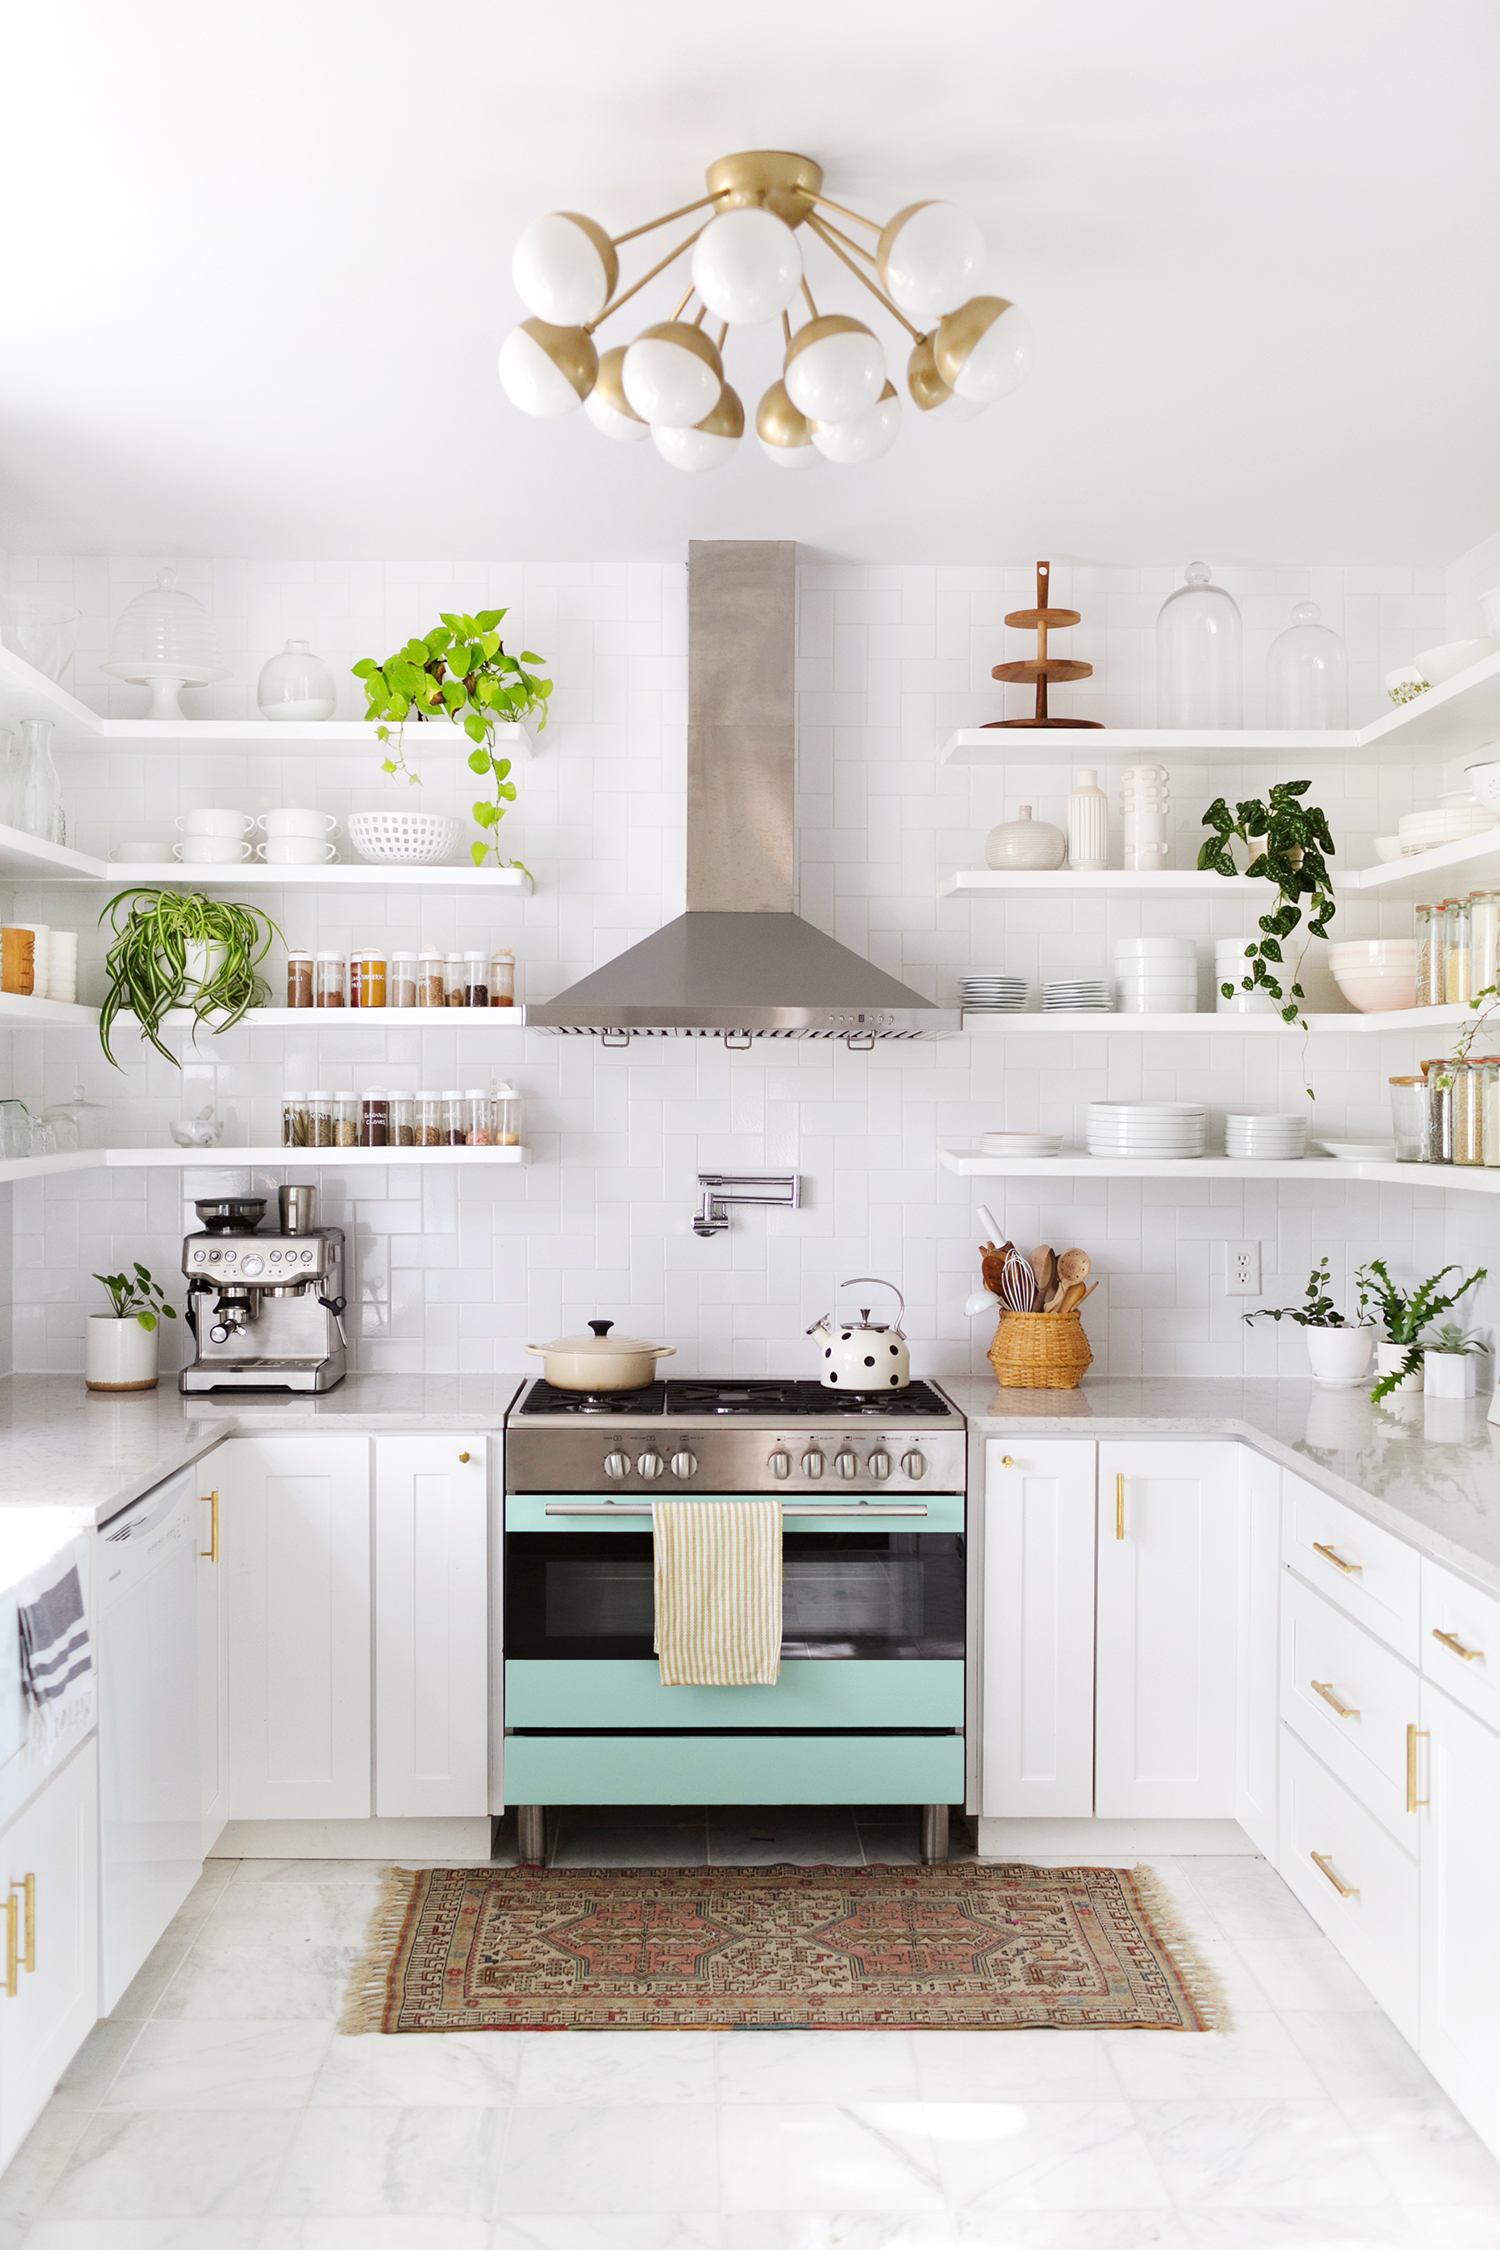 You are going to adore this Collection of Dream Kitchens and they are going to leave you breathless my friends! There is something for everyone! You will get tons of ideas and inspiration!